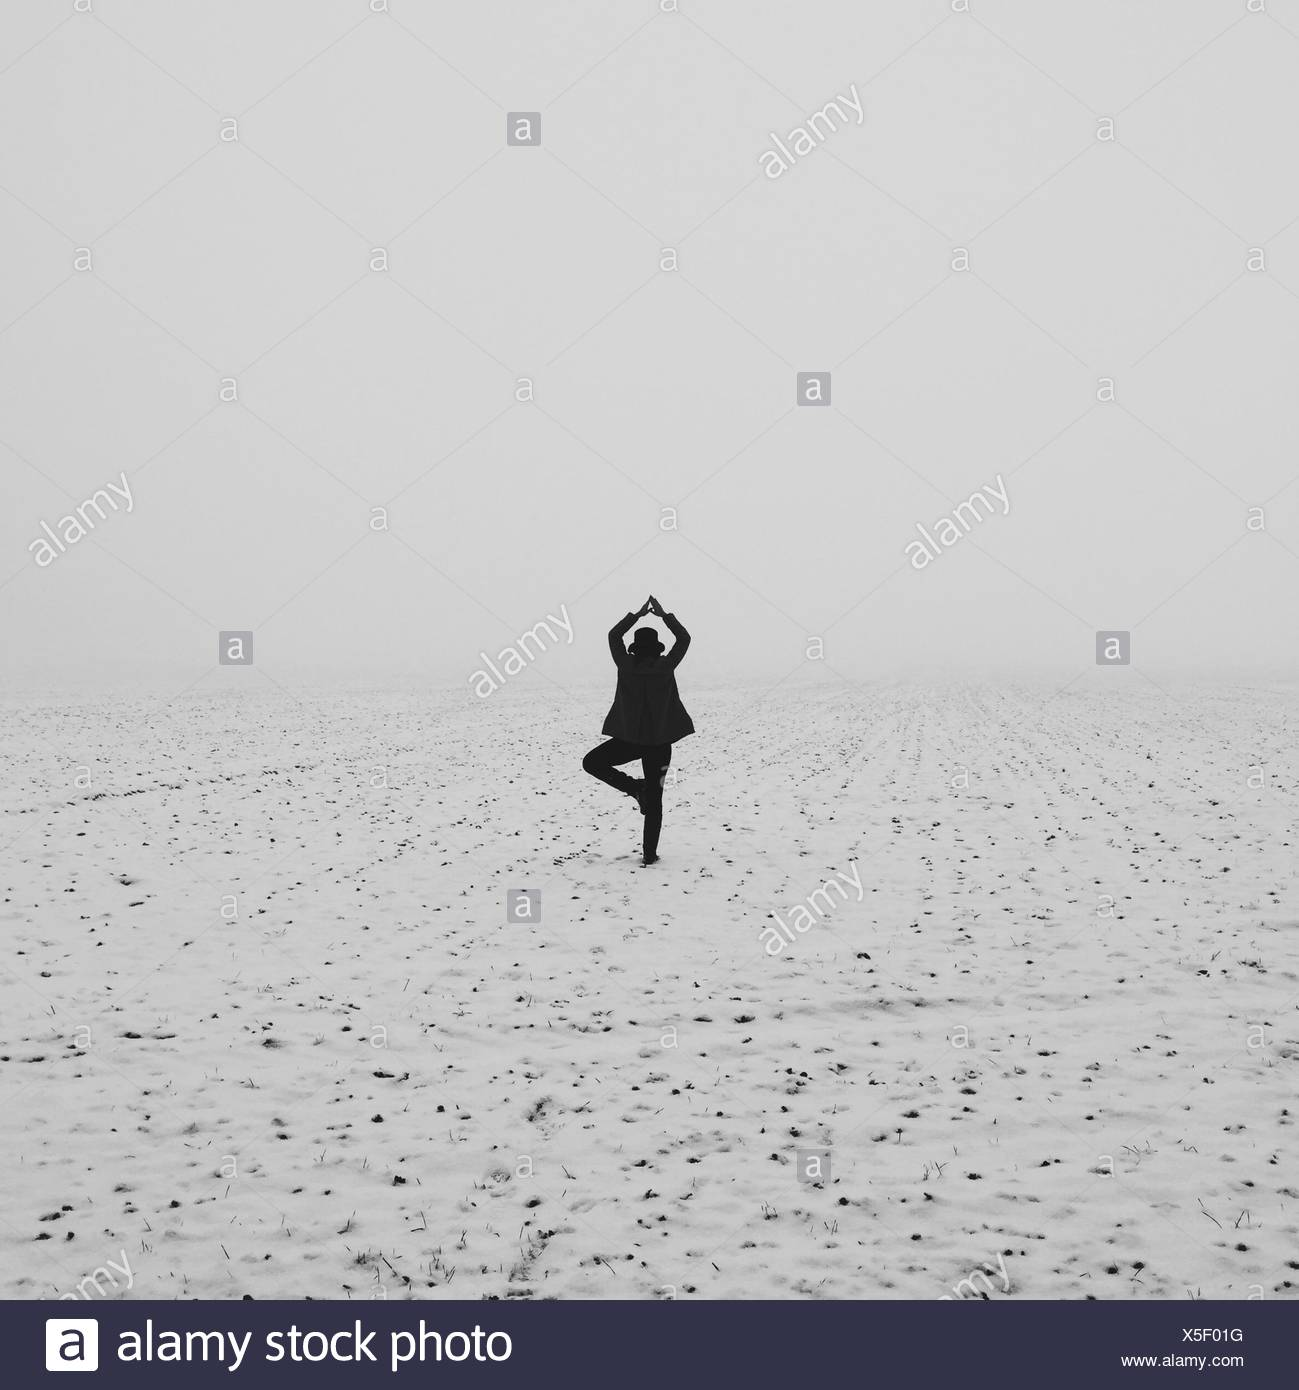 Rear View Of Woman Doing Yoga In Snowy Field - Stock Image